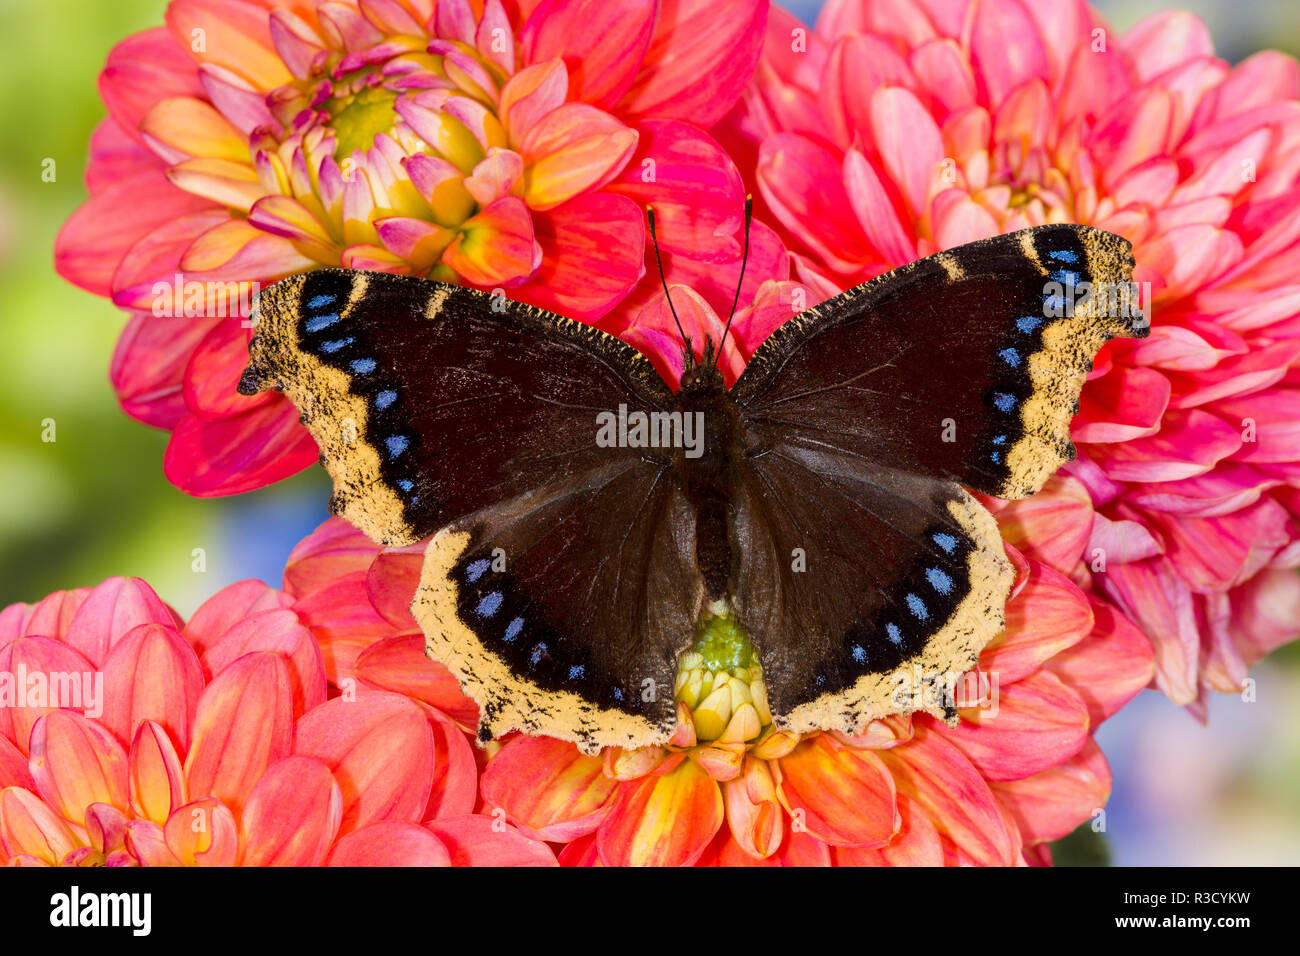 North American butterfly Mourning cloak on Dahlia flowers. - Stock Image